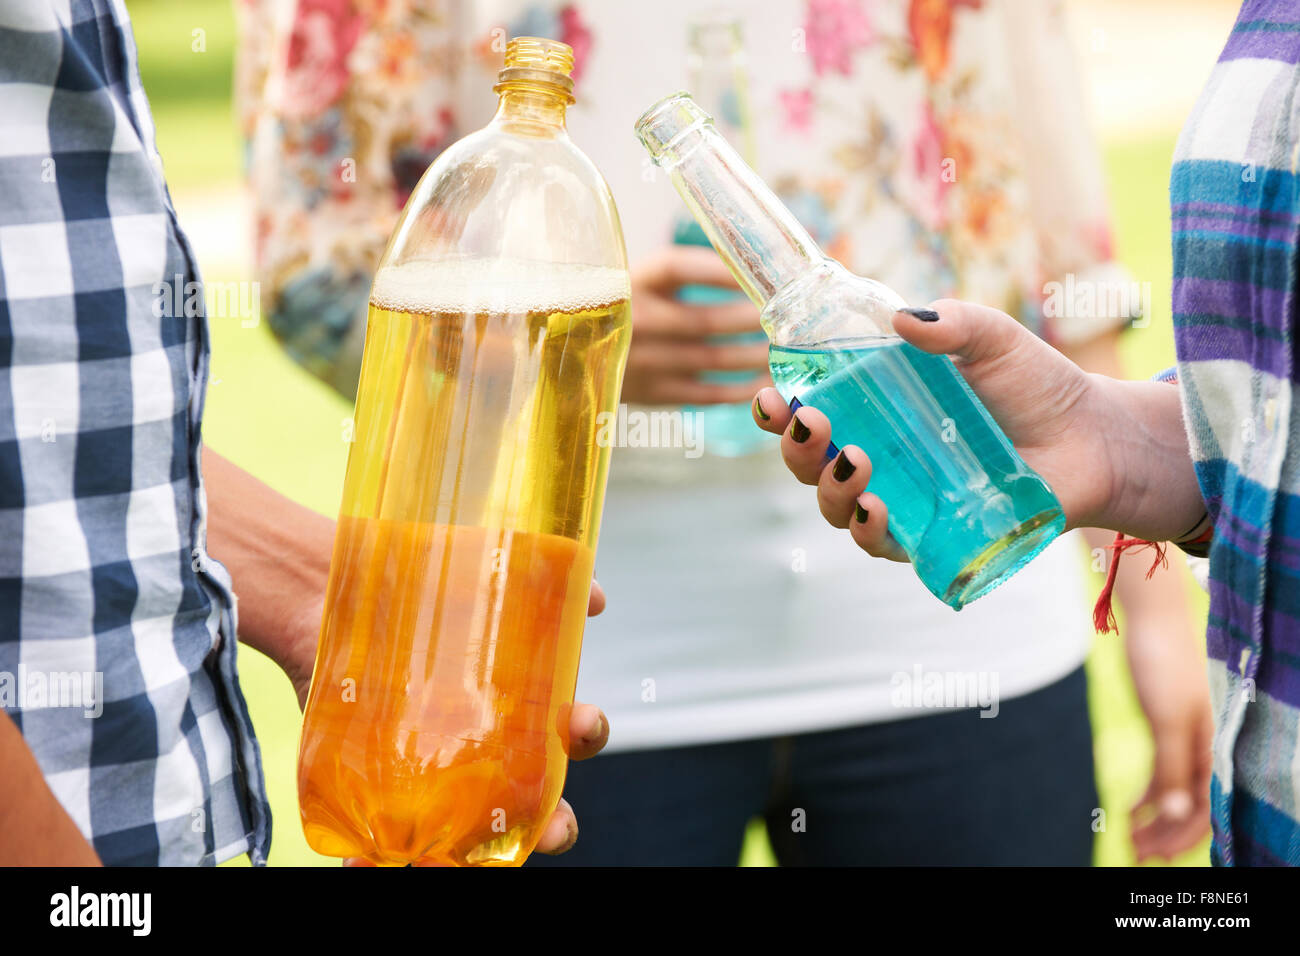 Group Of Teenagers Drinking Alcohol - Stock Image